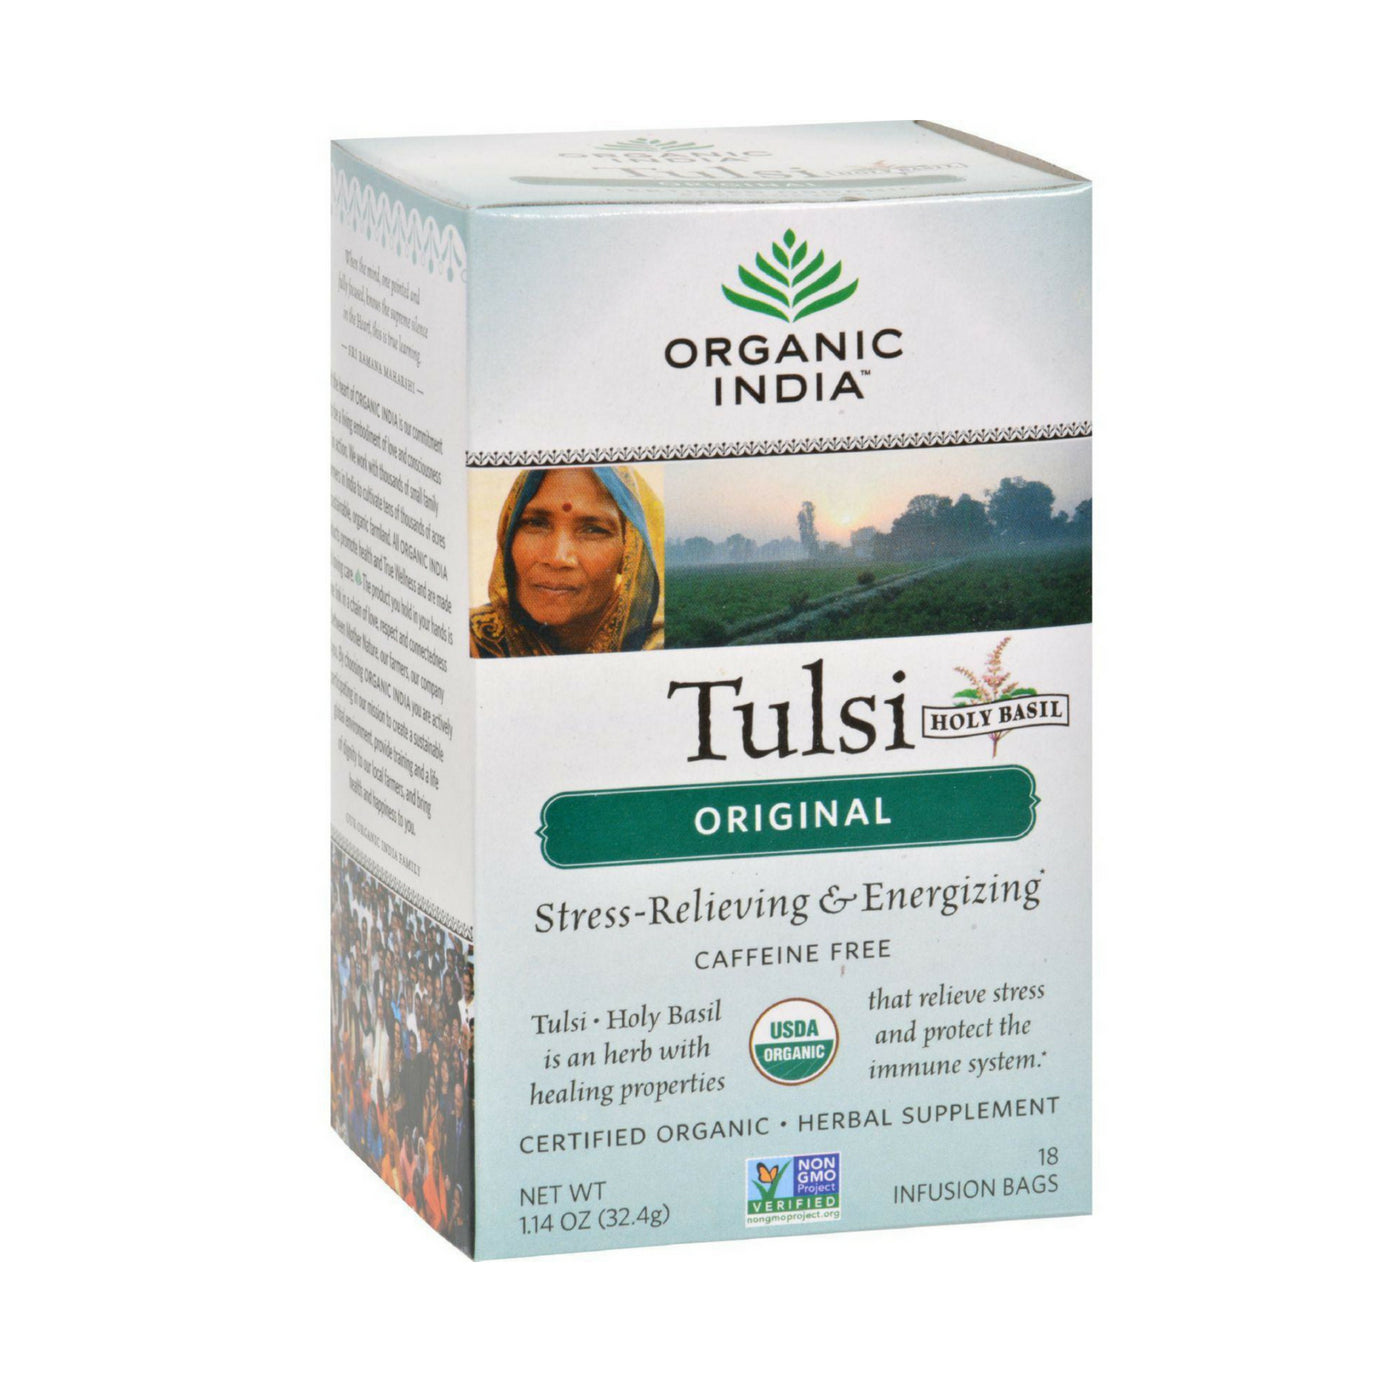 Organic India Tulsi Holy Basil Tea, Orginal, Caffeine-Free